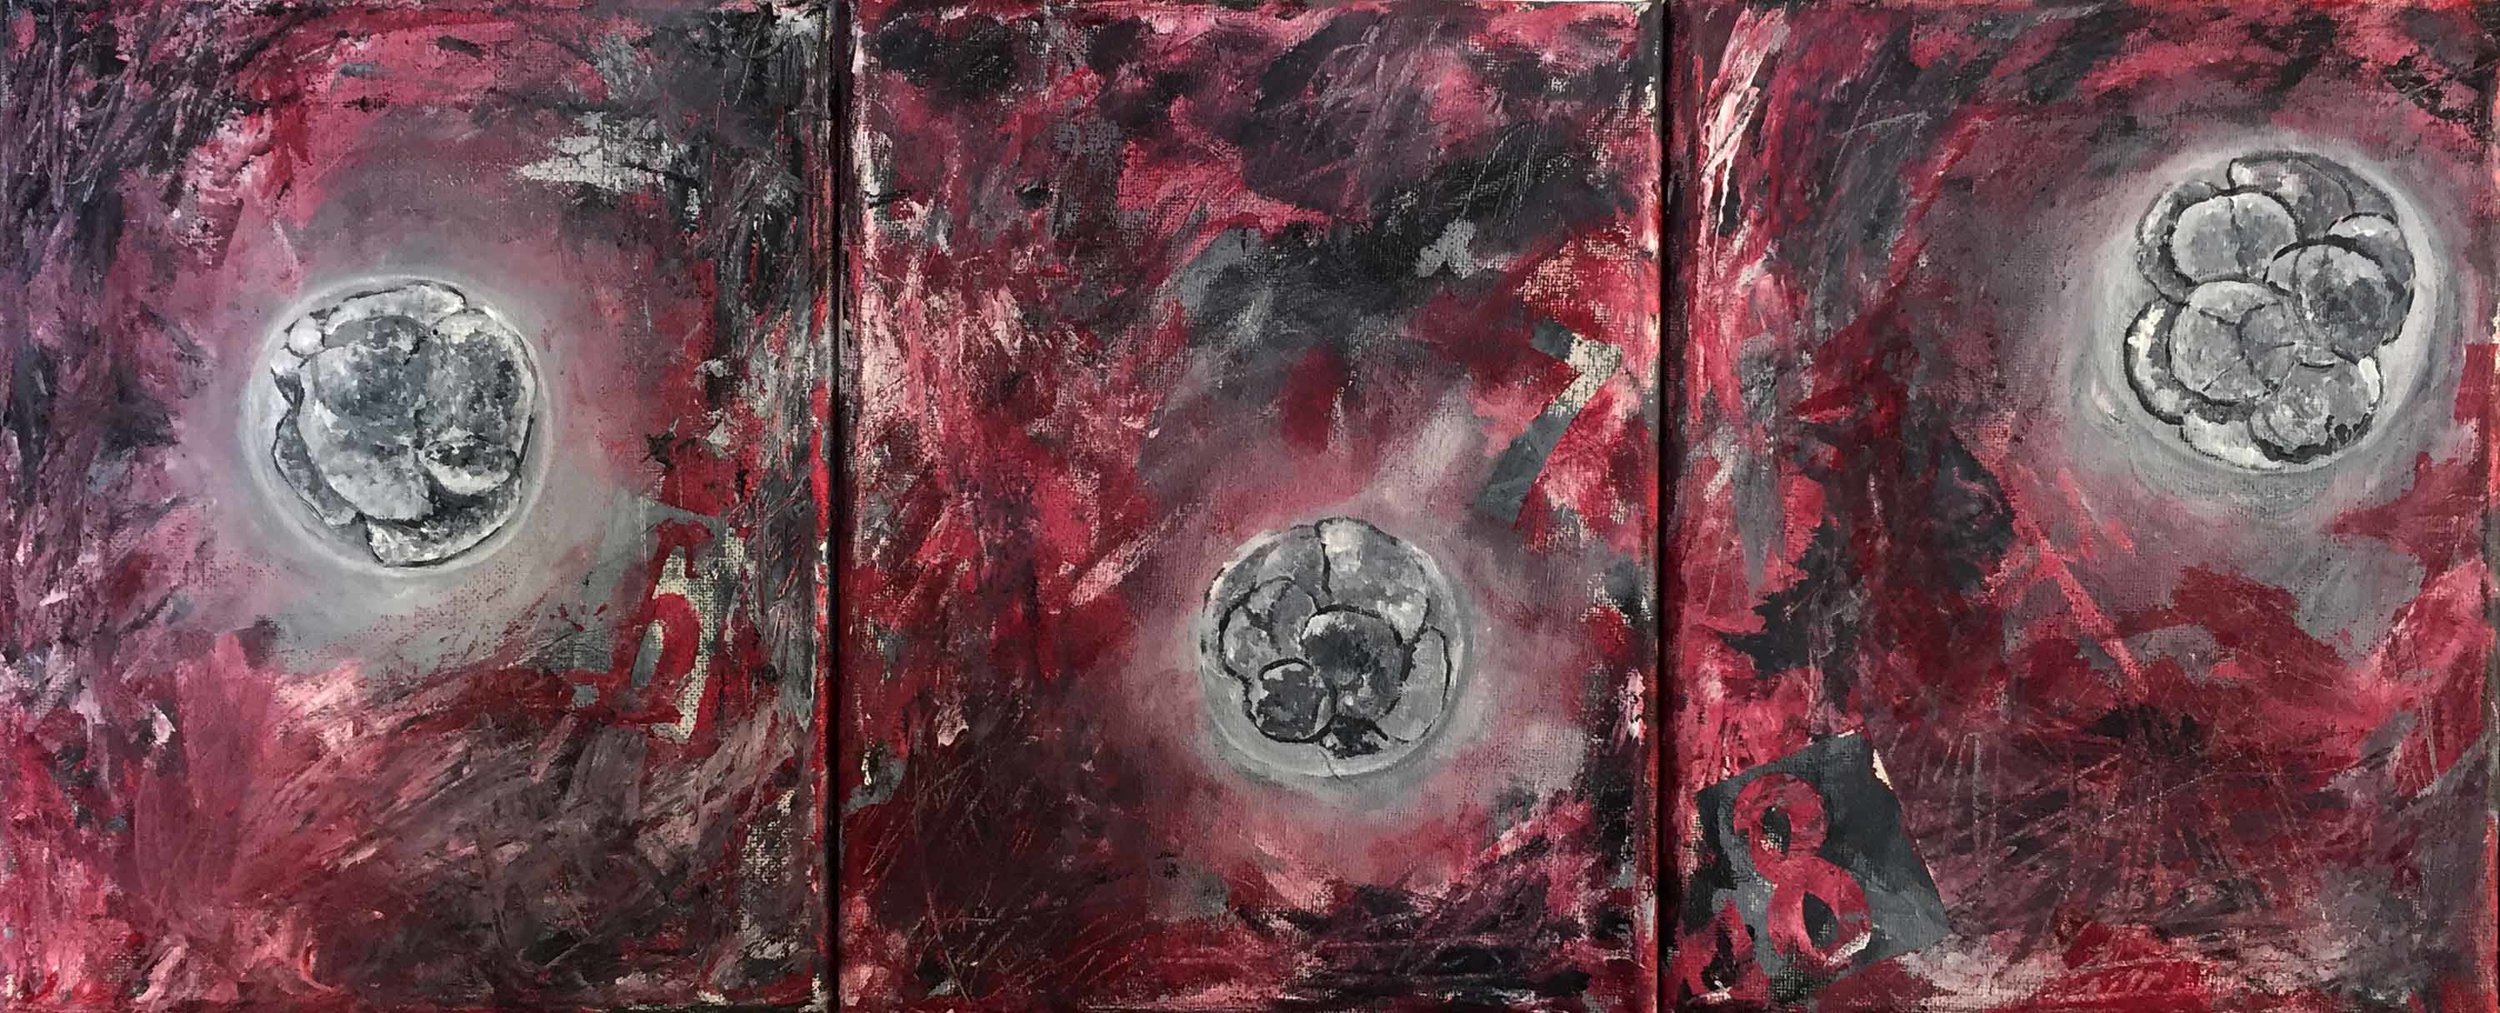 Fertility - Six, Seven and Eight Zygotes on a Canvas - triptych, acrylic, 24x10, 2016